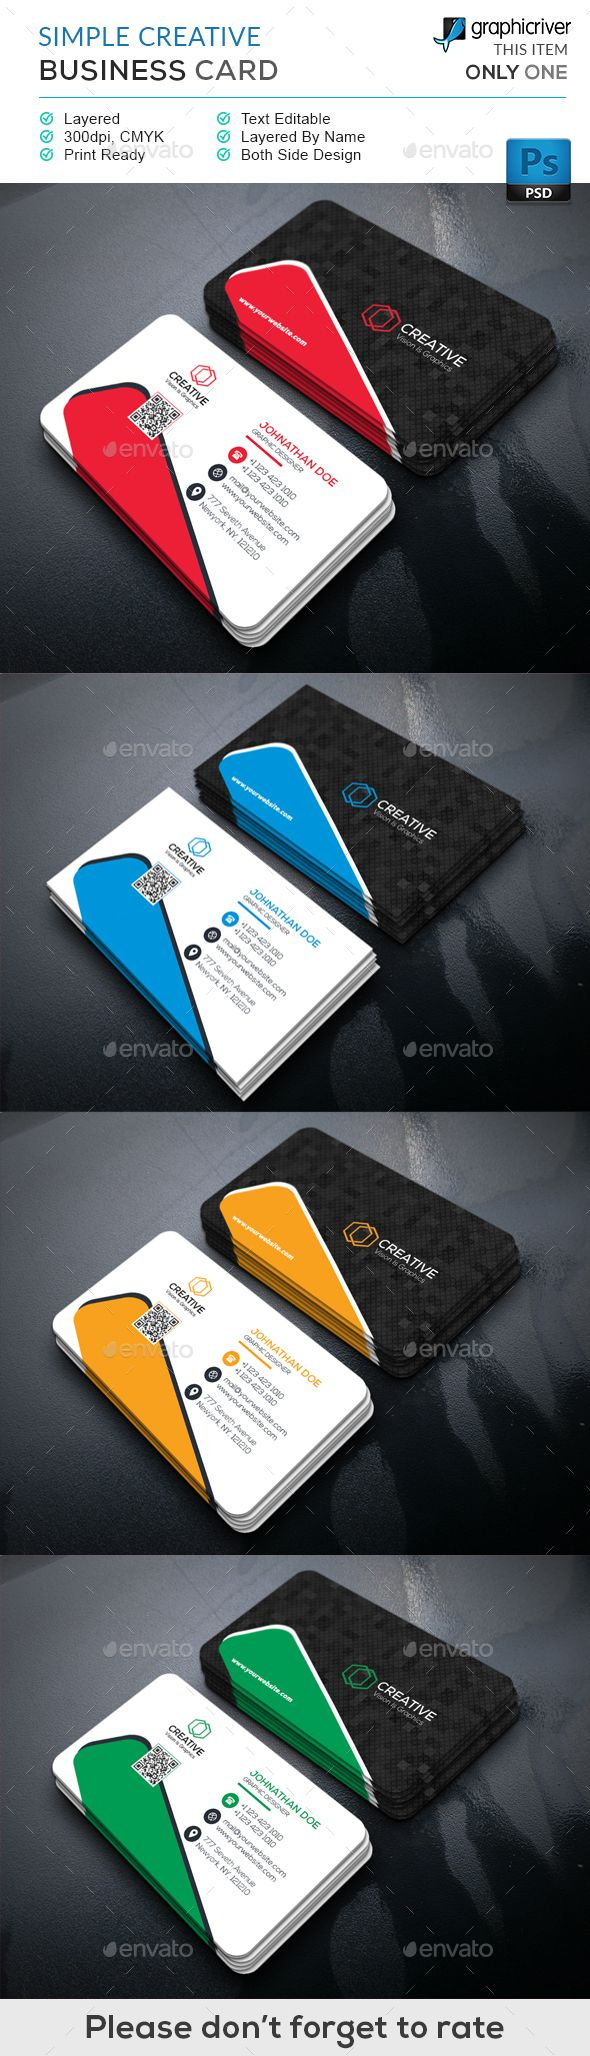 9 best exotic business cards images on pinterest exotic simple creative business card magicingreecefo Image collections